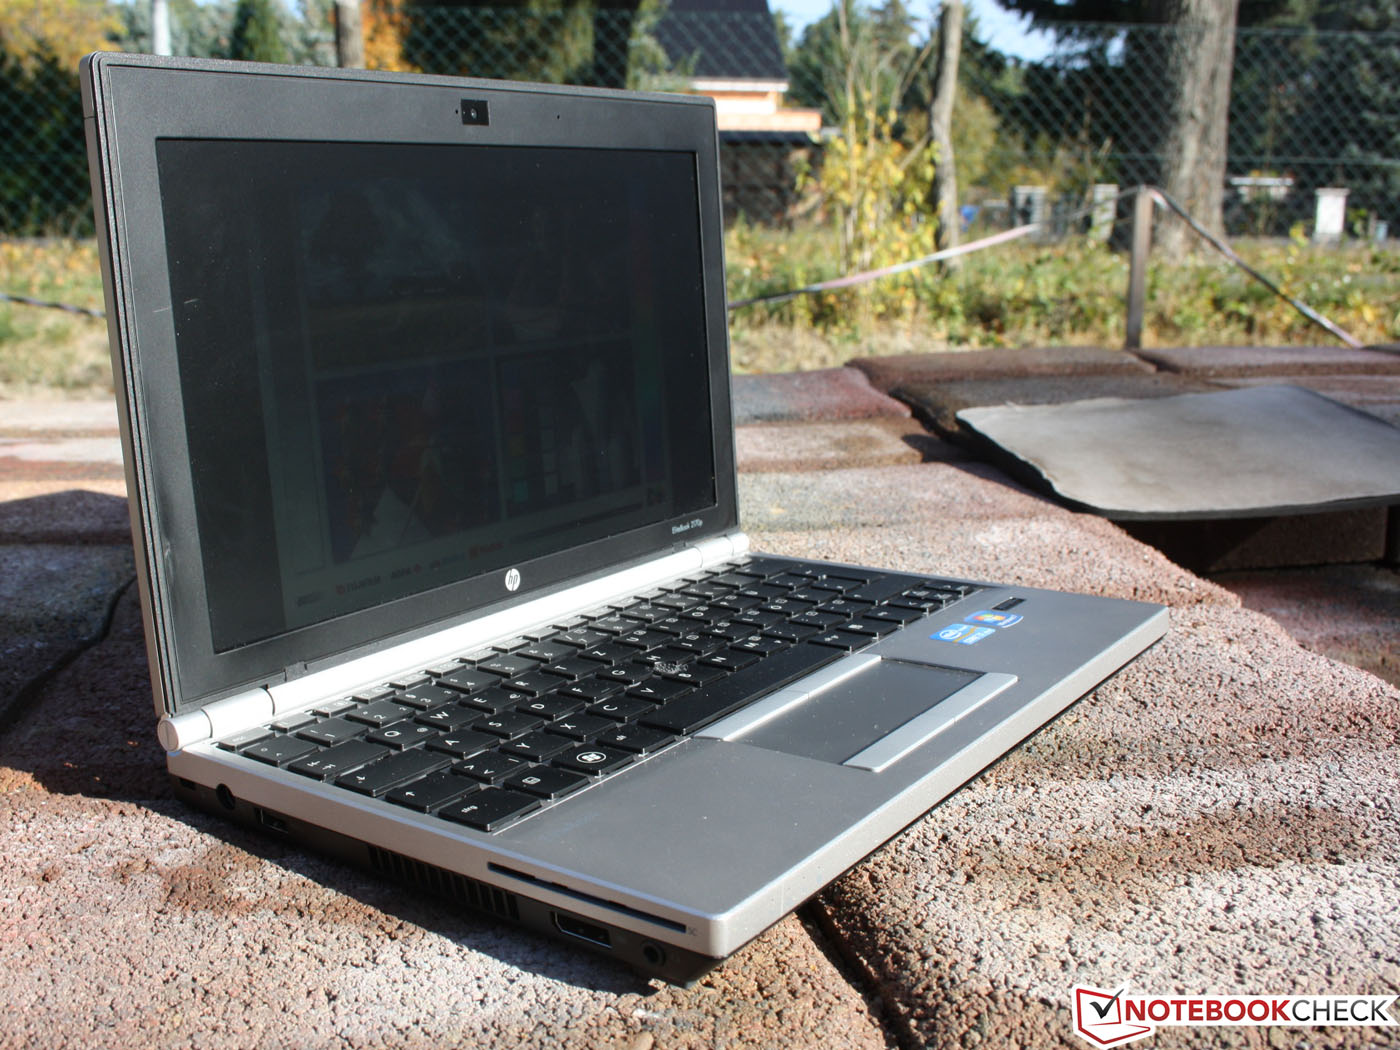 Laptop xach tay gia re HP Elitebook 2170p da nang